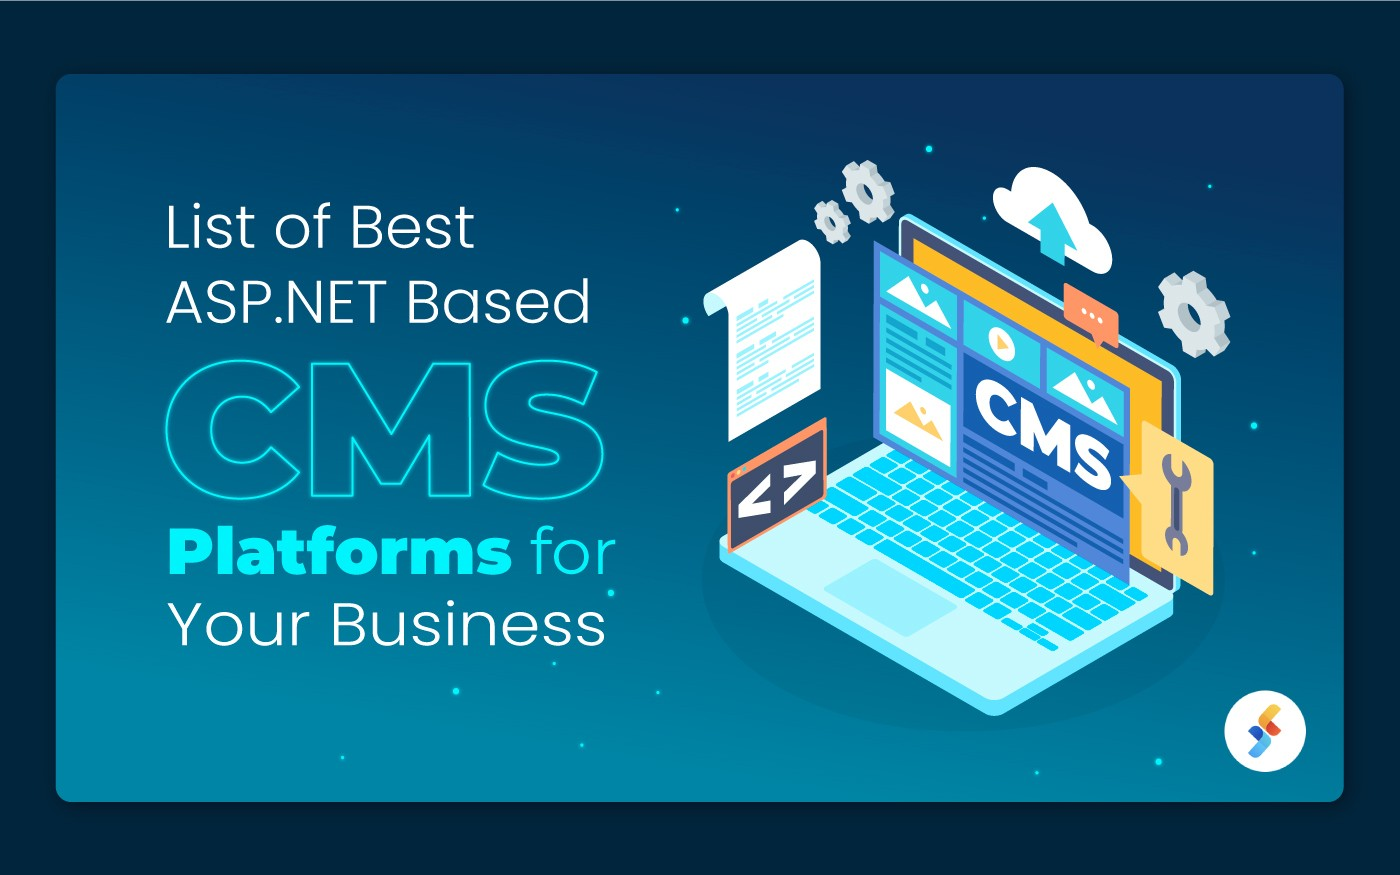 List-of-Best-ASP.NET-Based-CMS-Platforms-for-Your-Business